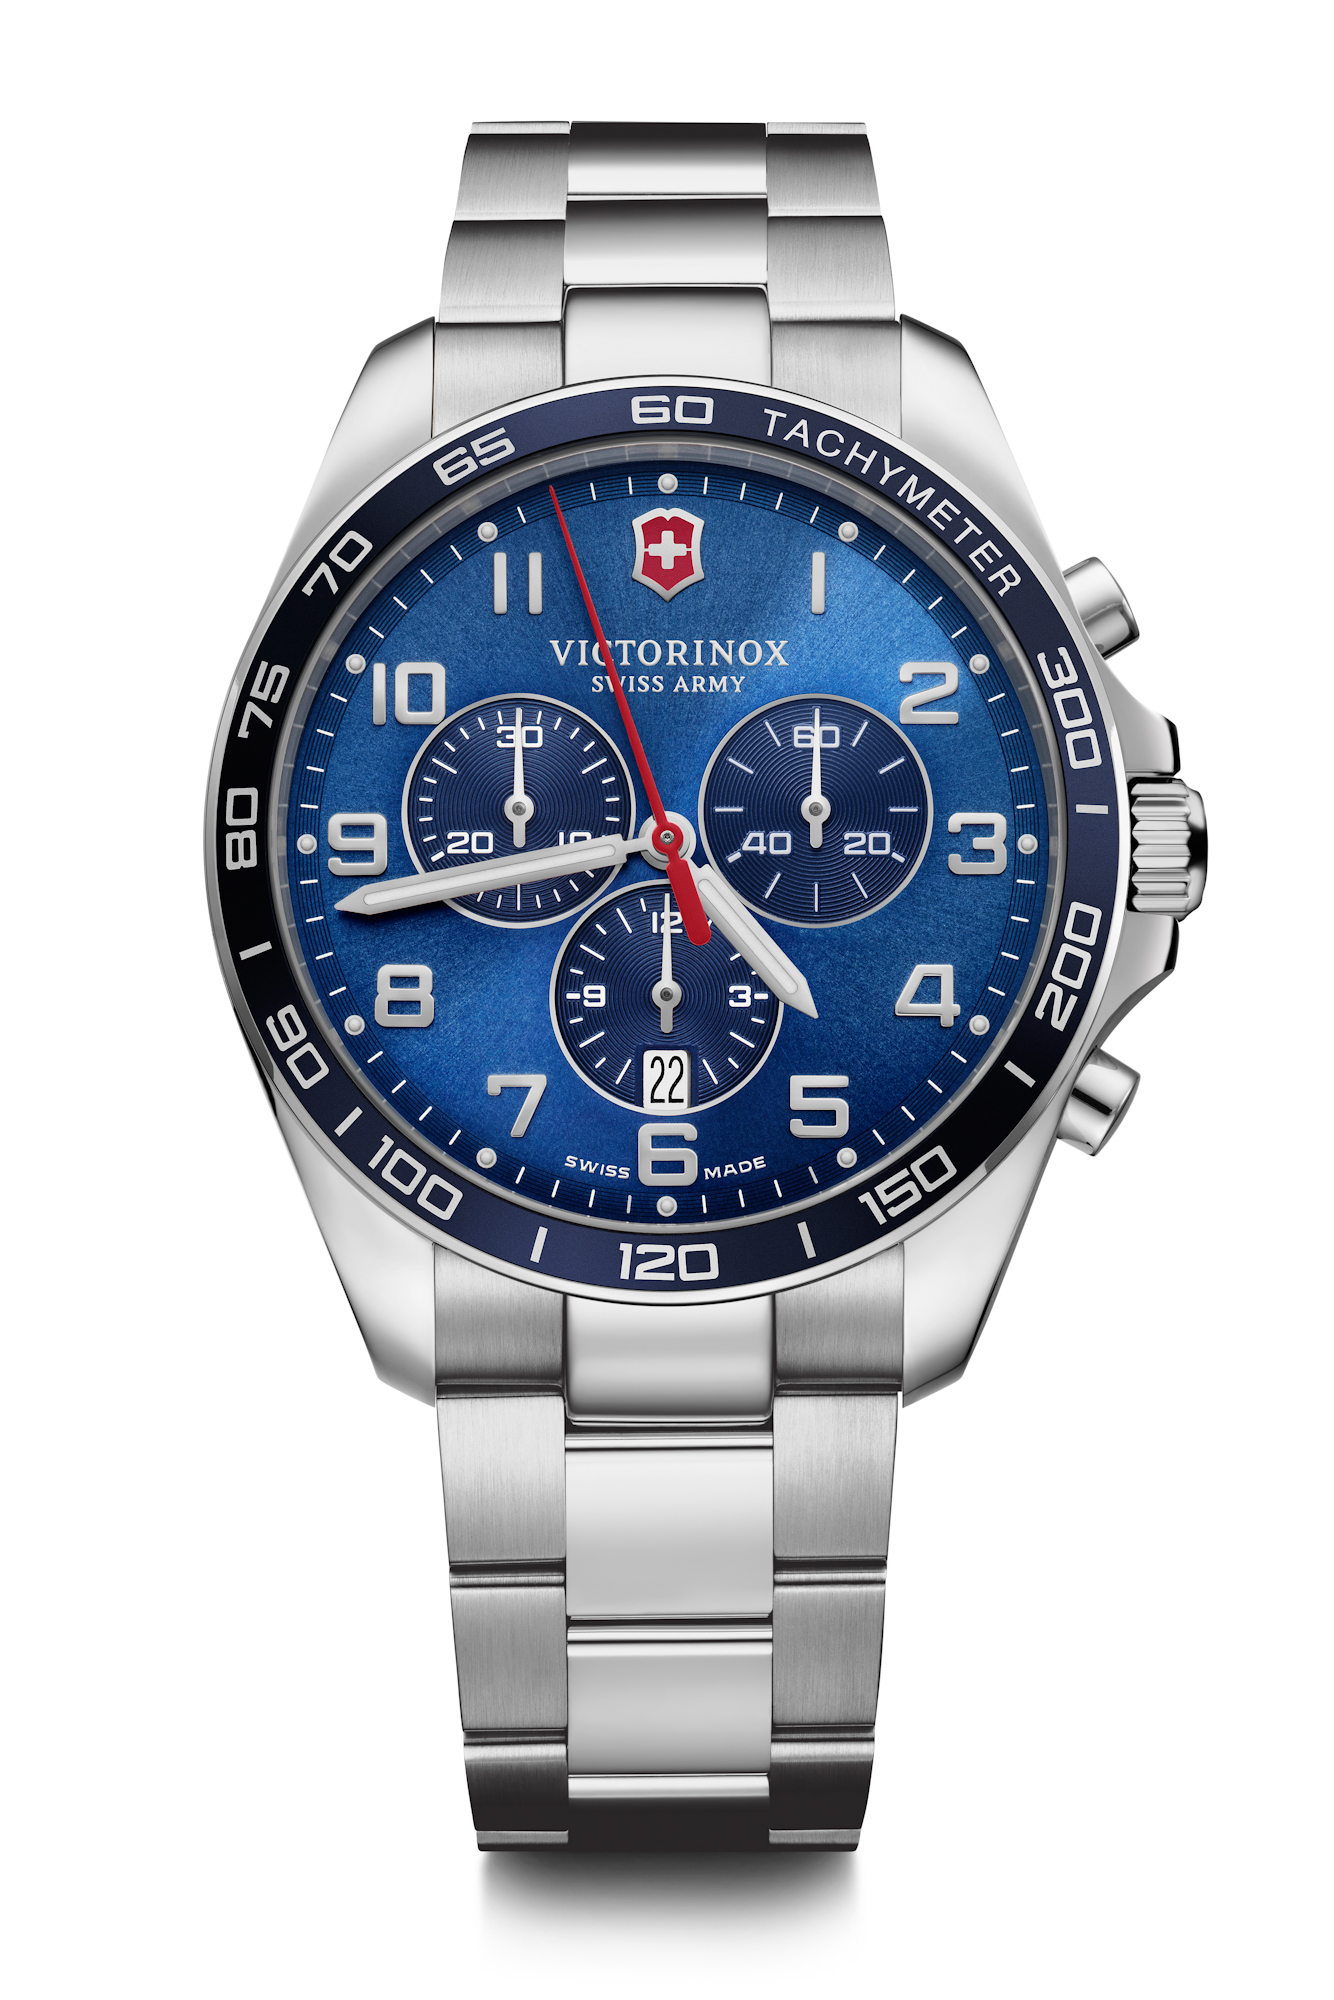 Victorinox Swiss Army FieldForce Classic Chronograph timeandwatches.pl